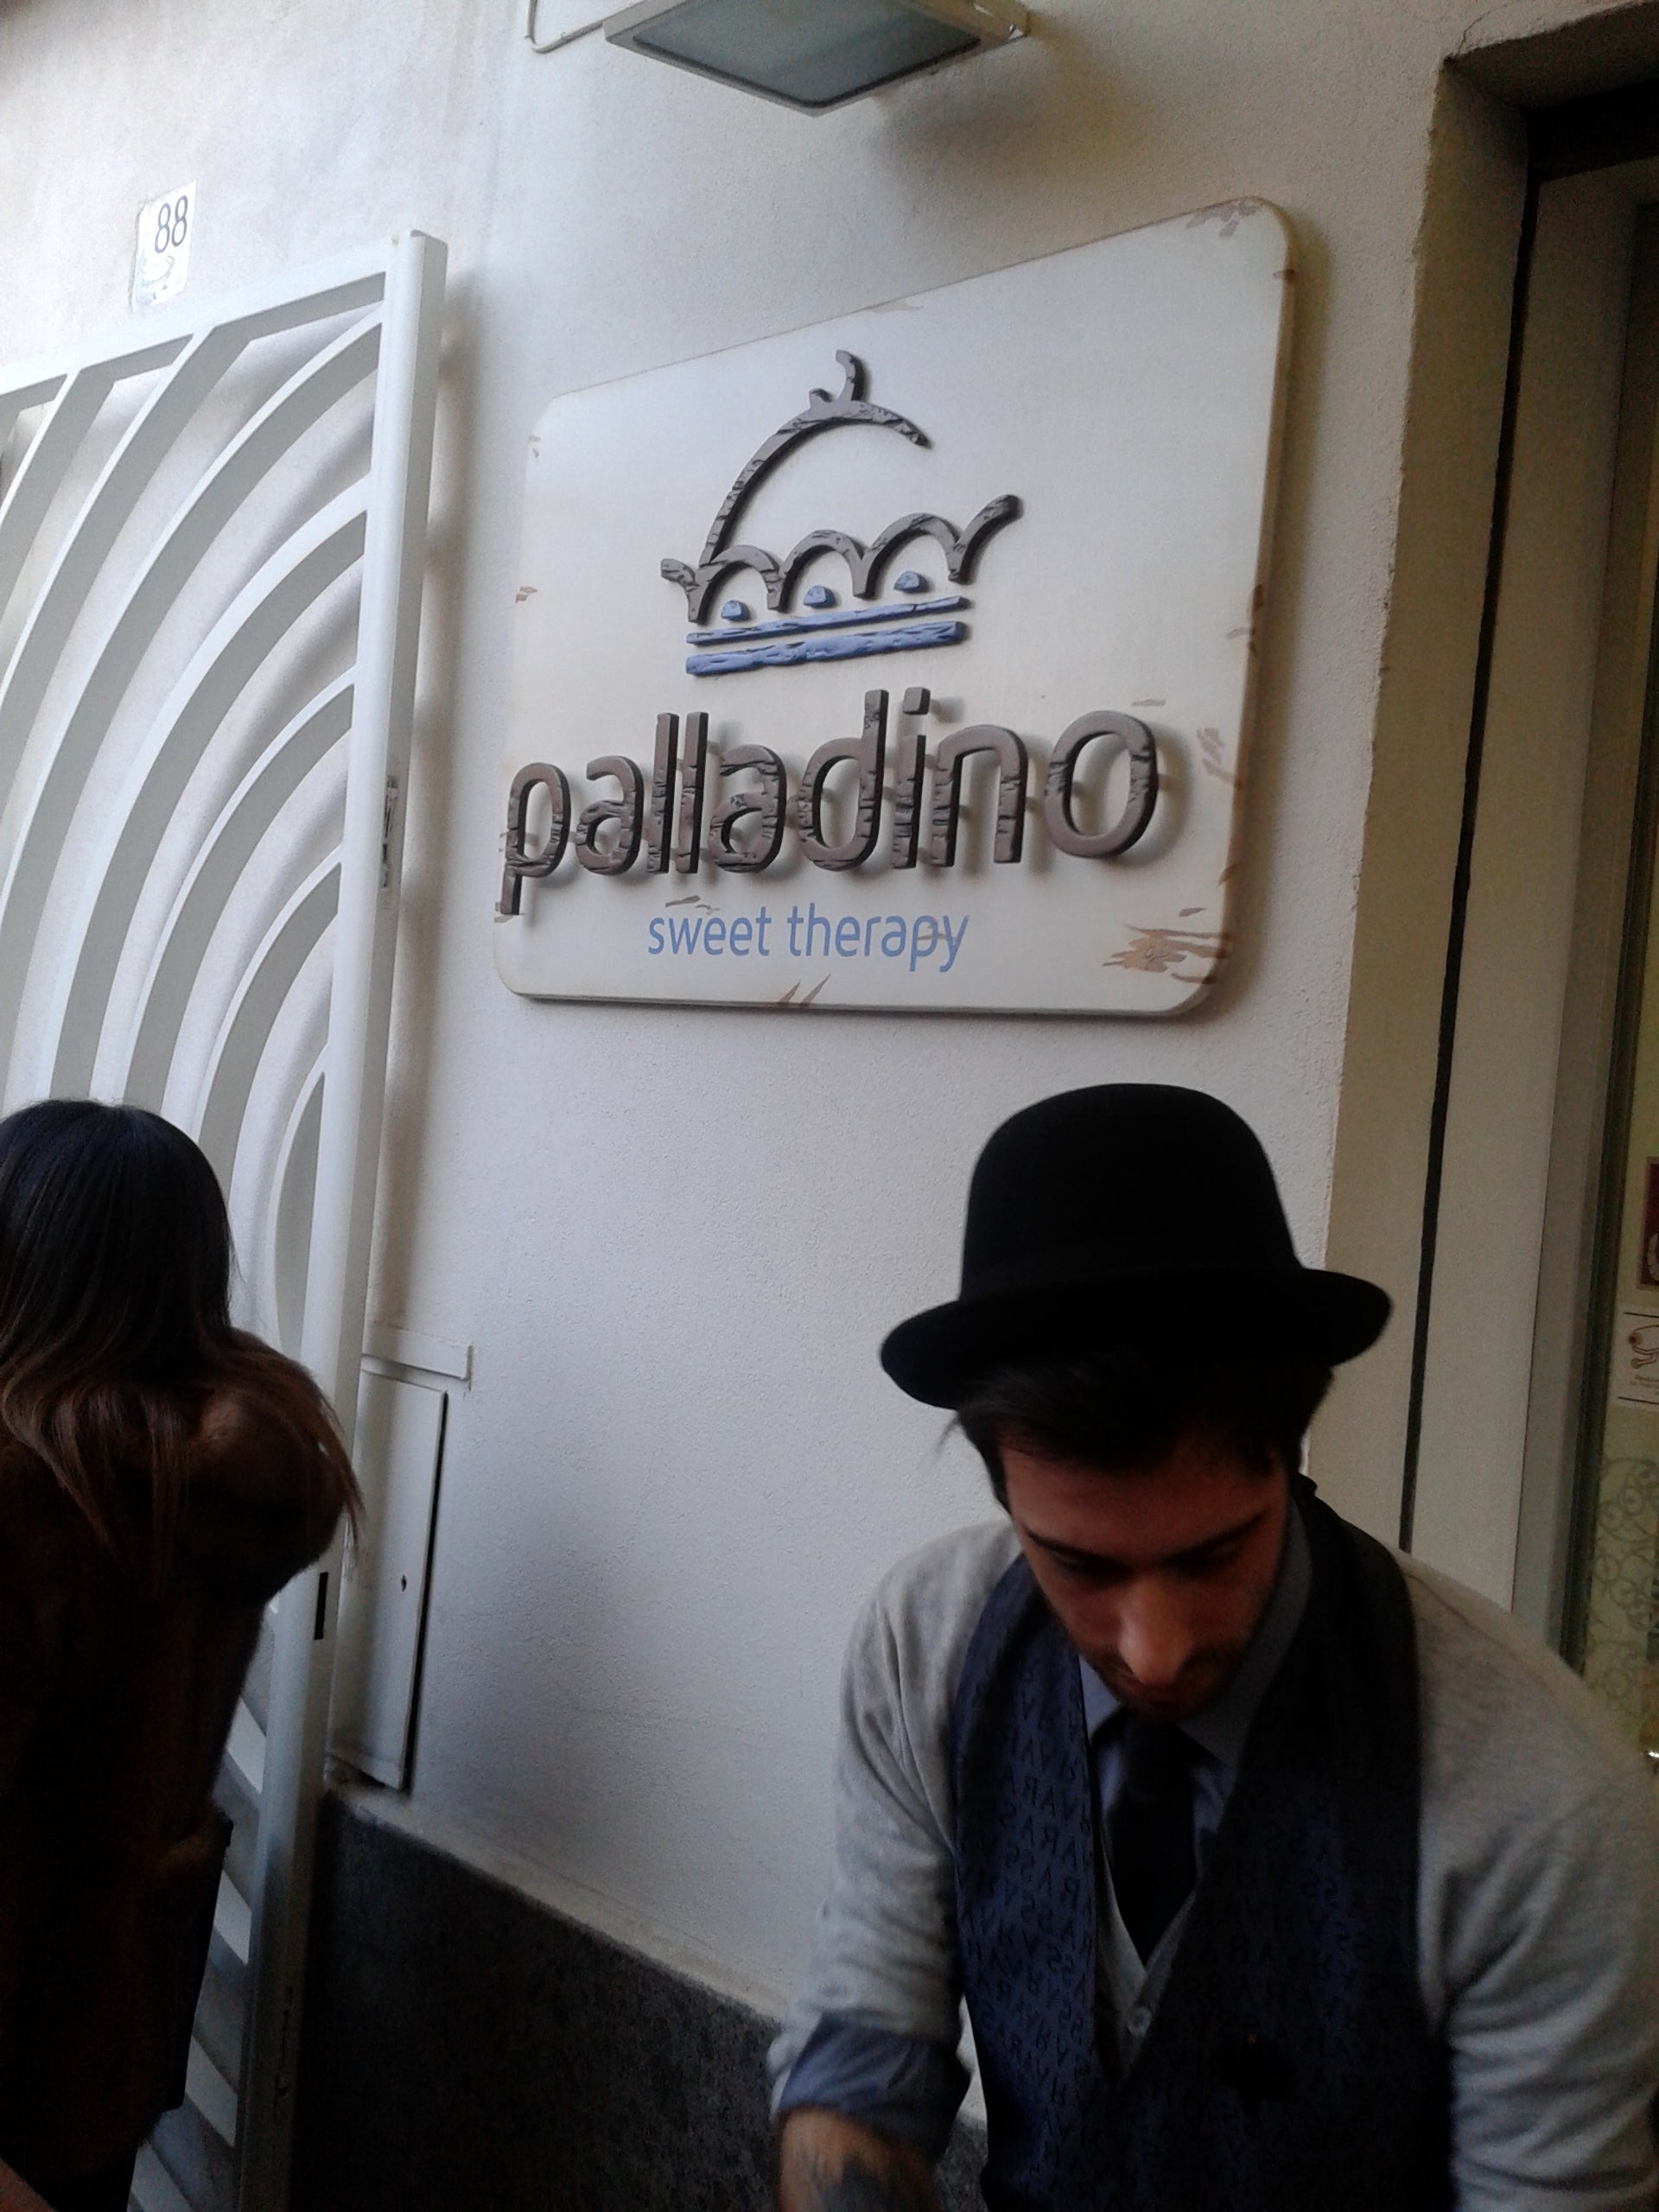 Palladino Sweet Therapy